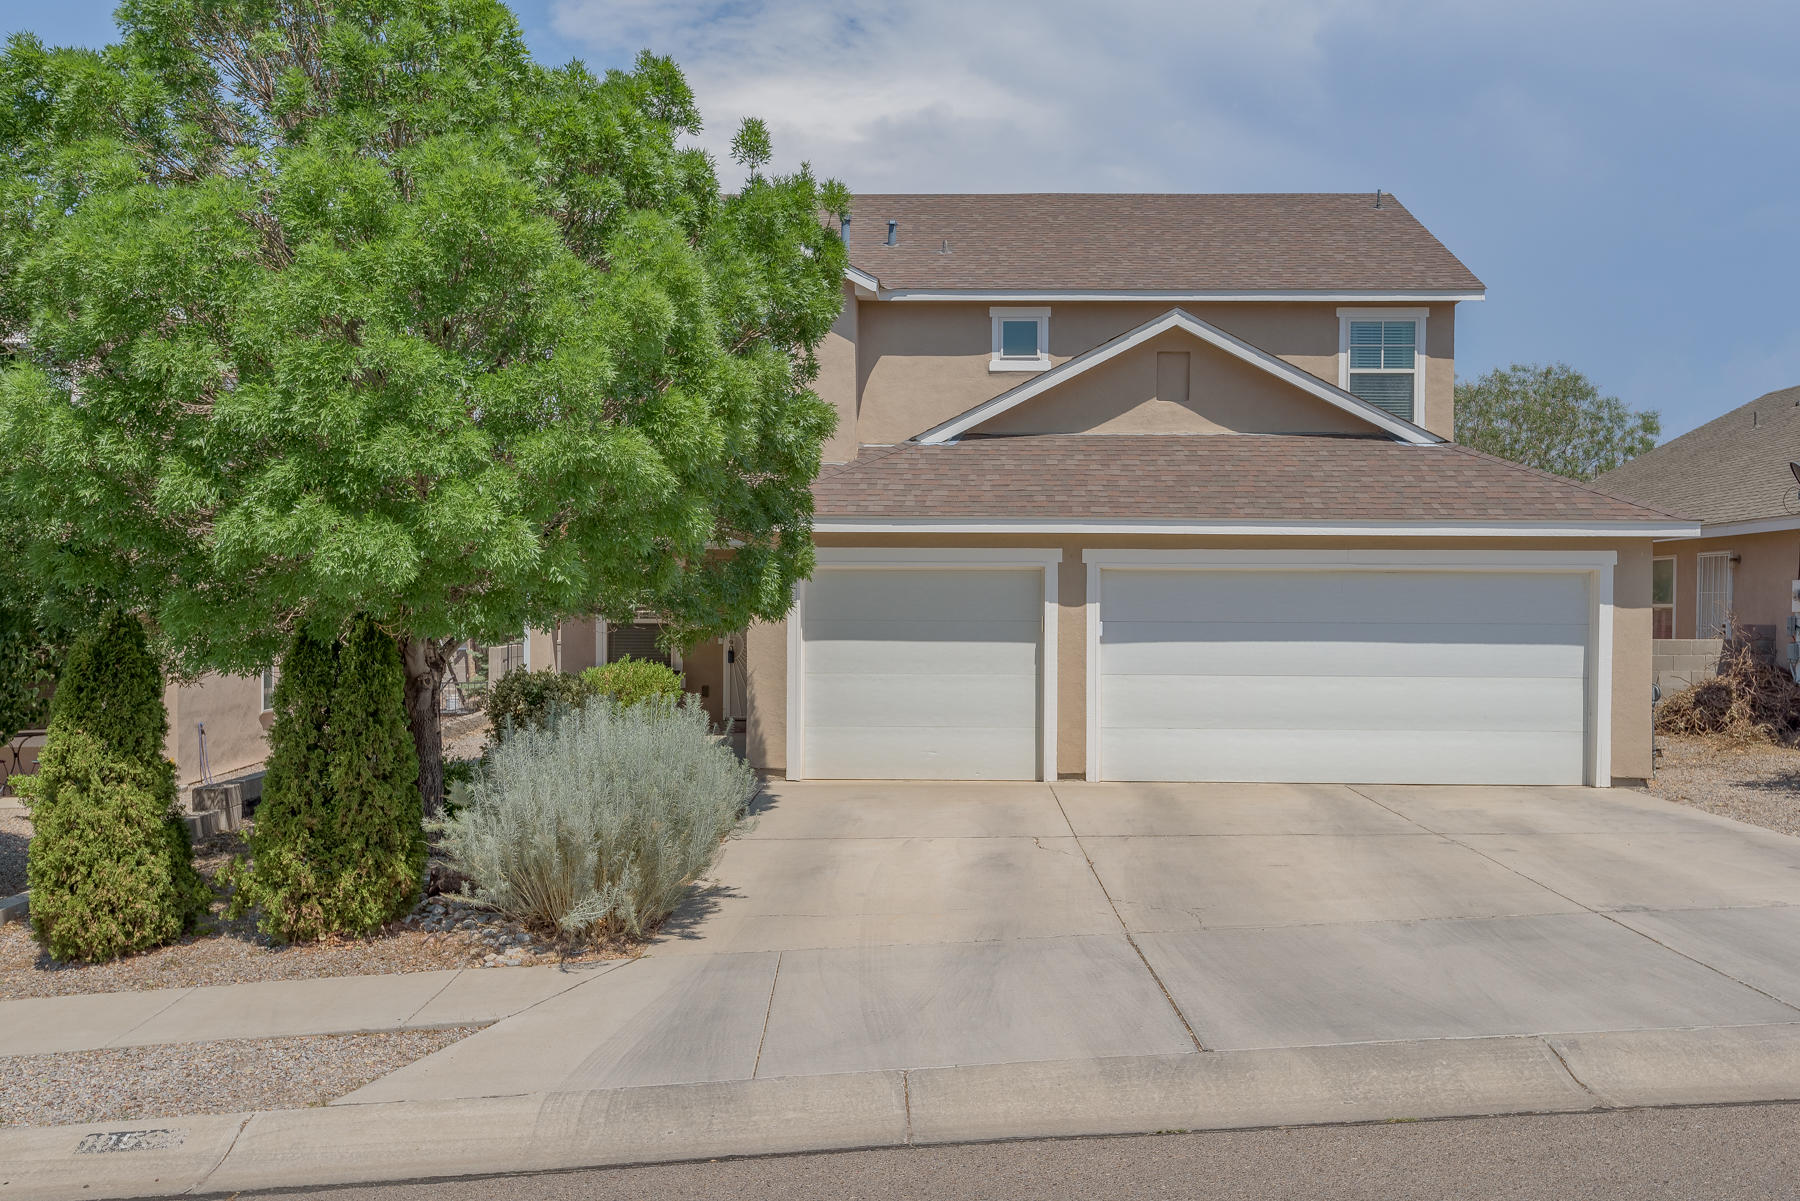 5 Bedroom/ 2 1/2 Bath home in the Seville Subdivision of Paradise Hills!  2 plus living areas, formal dining, eat-in kitchen with gas range.  Bedroom/Office downstairs and 4 up.  SpaciousMaster Suite with walk-in closet.  Fully landscaped, storage shed, 3-Car Garage.